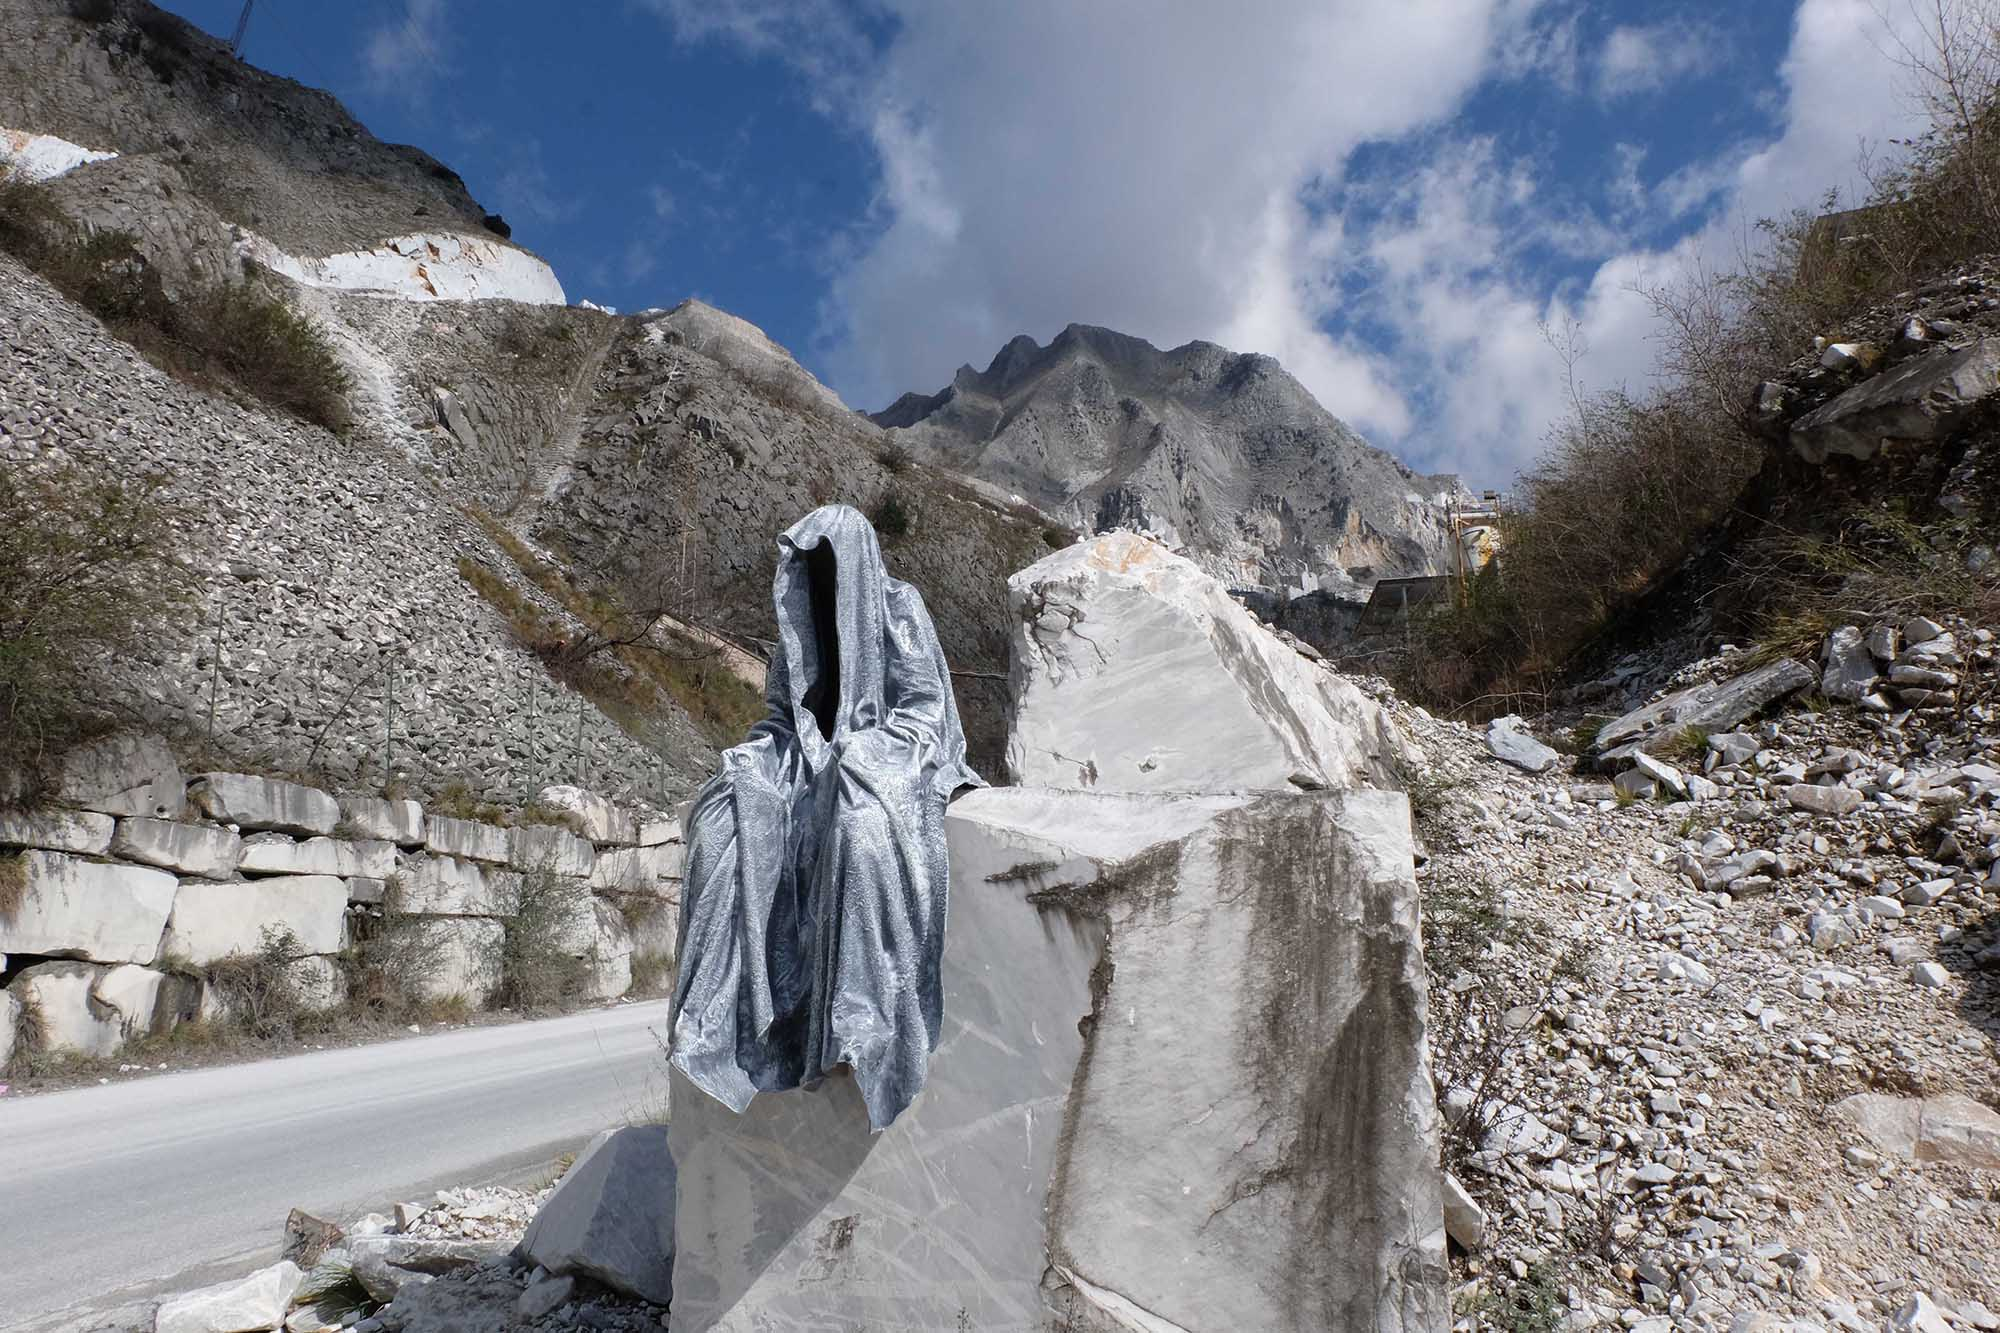 guardians of time manfred kili kielnhofer modern sculpture contemporary fine art design arts statue faceless religion stone marble carrara 0877